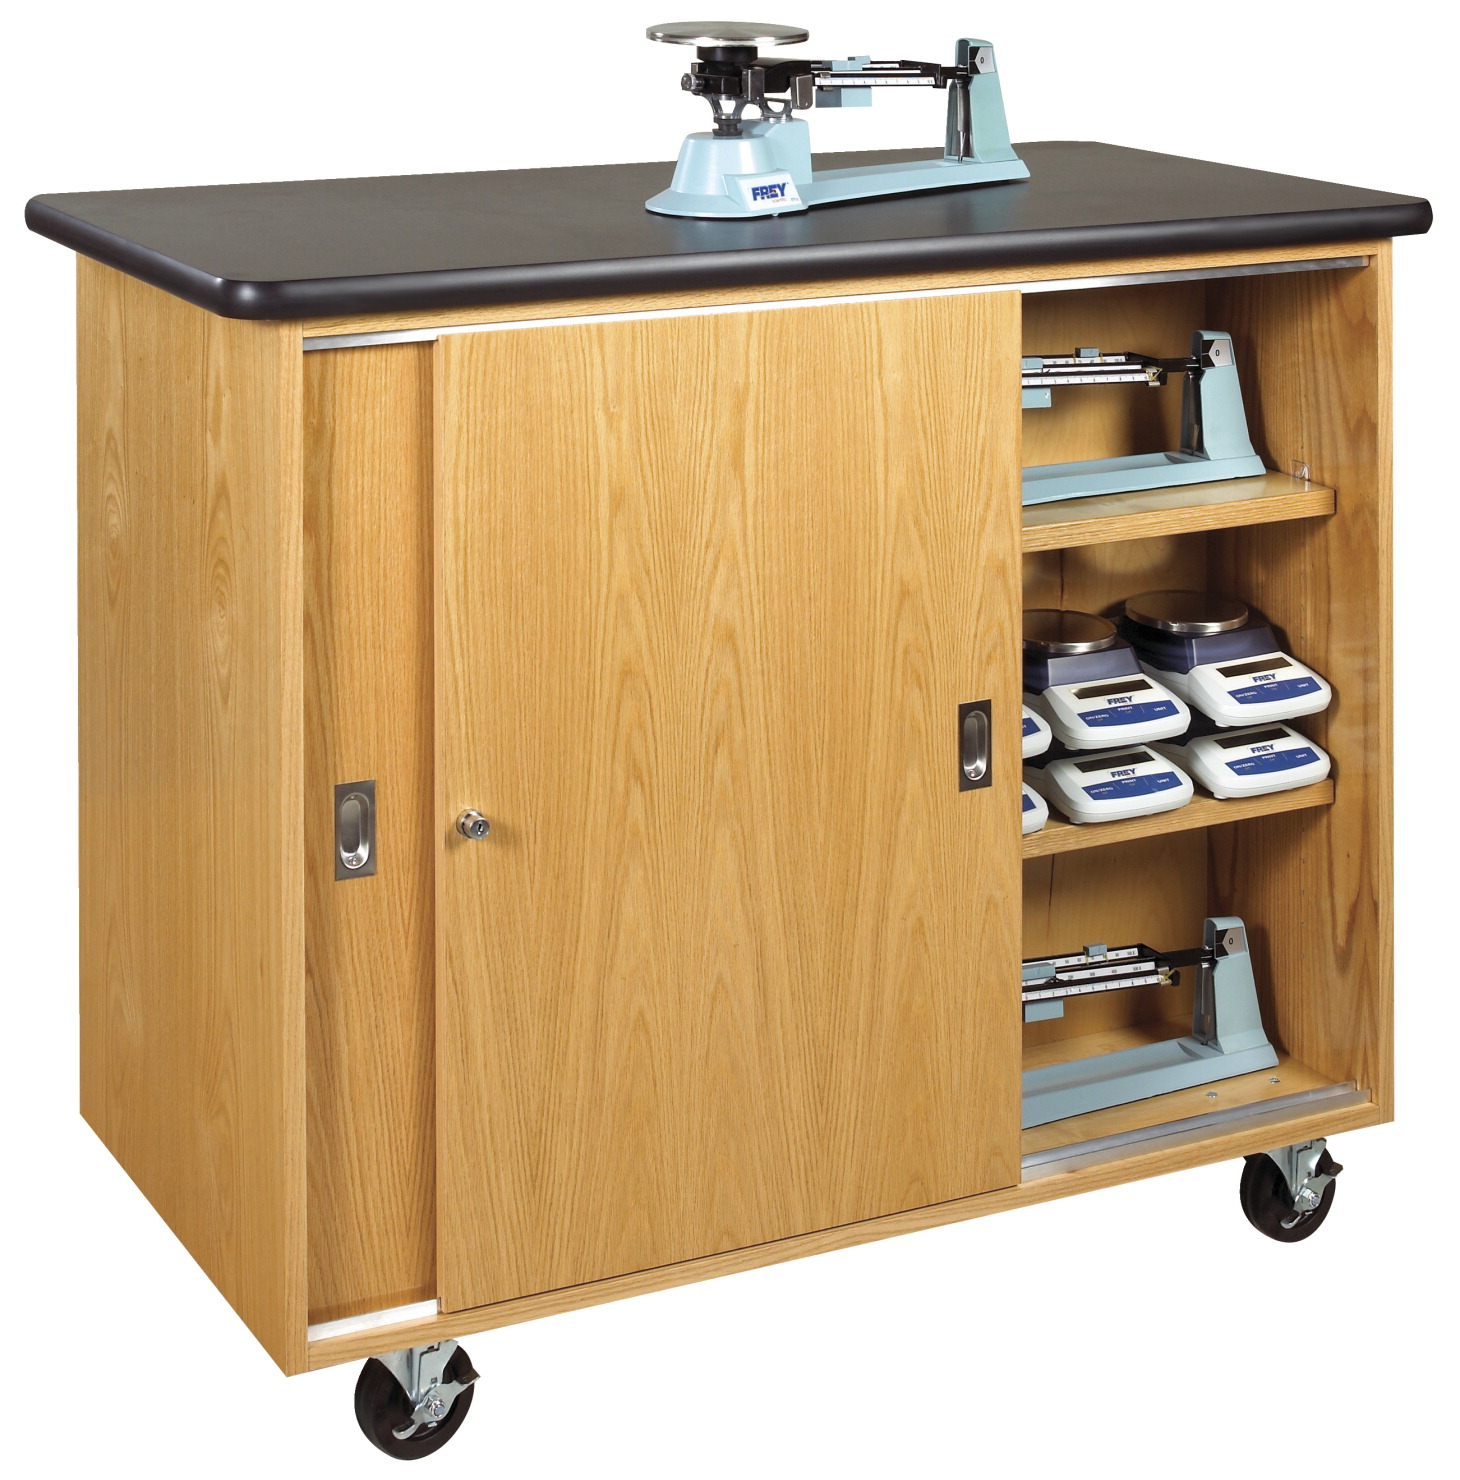 Diversified Woodcrafts Mobile Balance Storage Cabinet, 48 W x 24 D x 40 H in